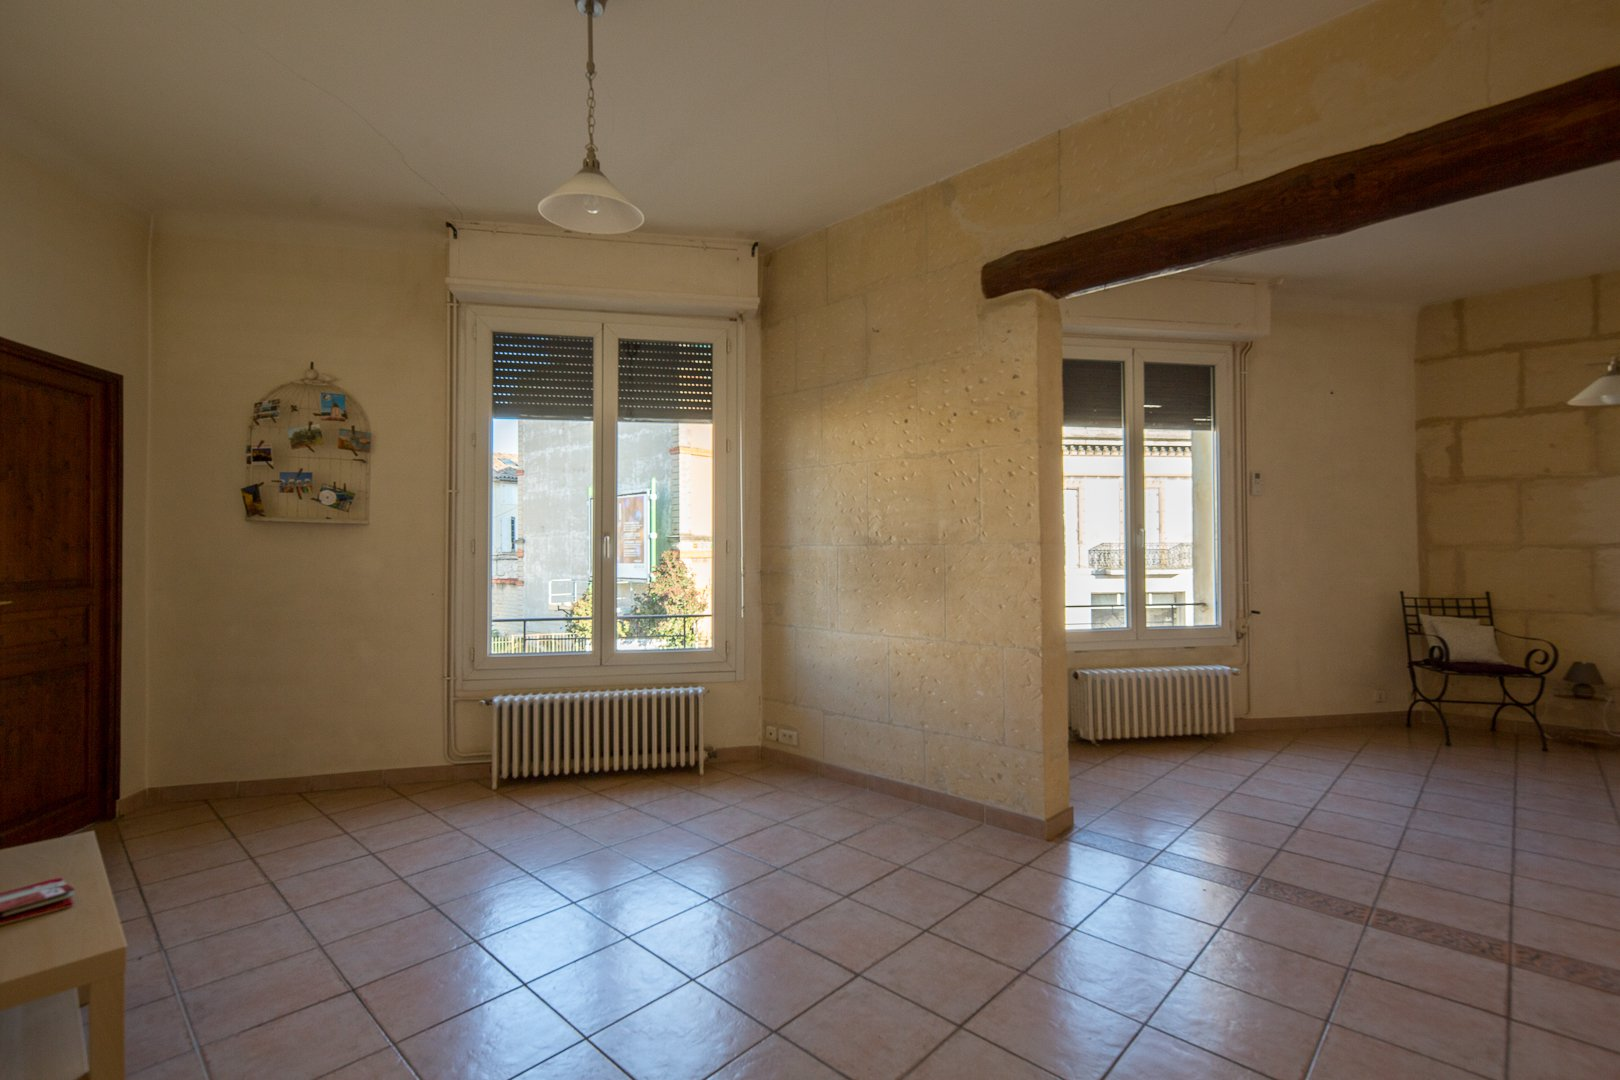 3 bedroom townhouse for sale - Arles Trinquetaille